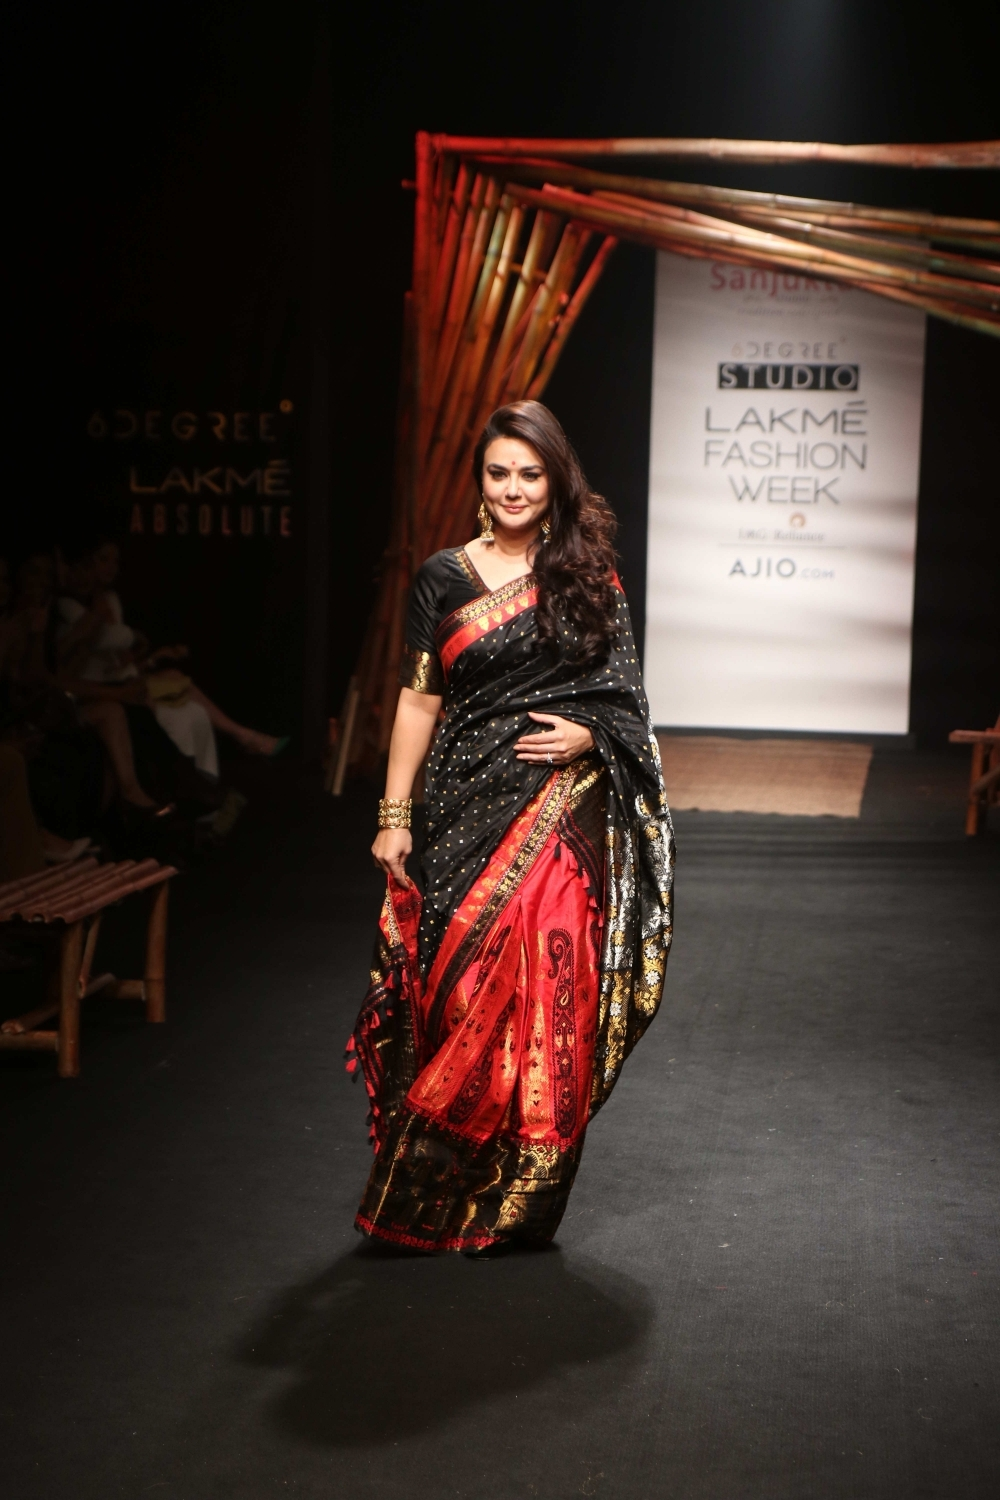 Mumbai: Actress Preity Zinta displays the creation of fashion designer Sanjukta Dutta during the Lakme Fashion Week Summer/Resort 2017, in Mumbai, on Feb 2, 2017. (Photo: IANS)